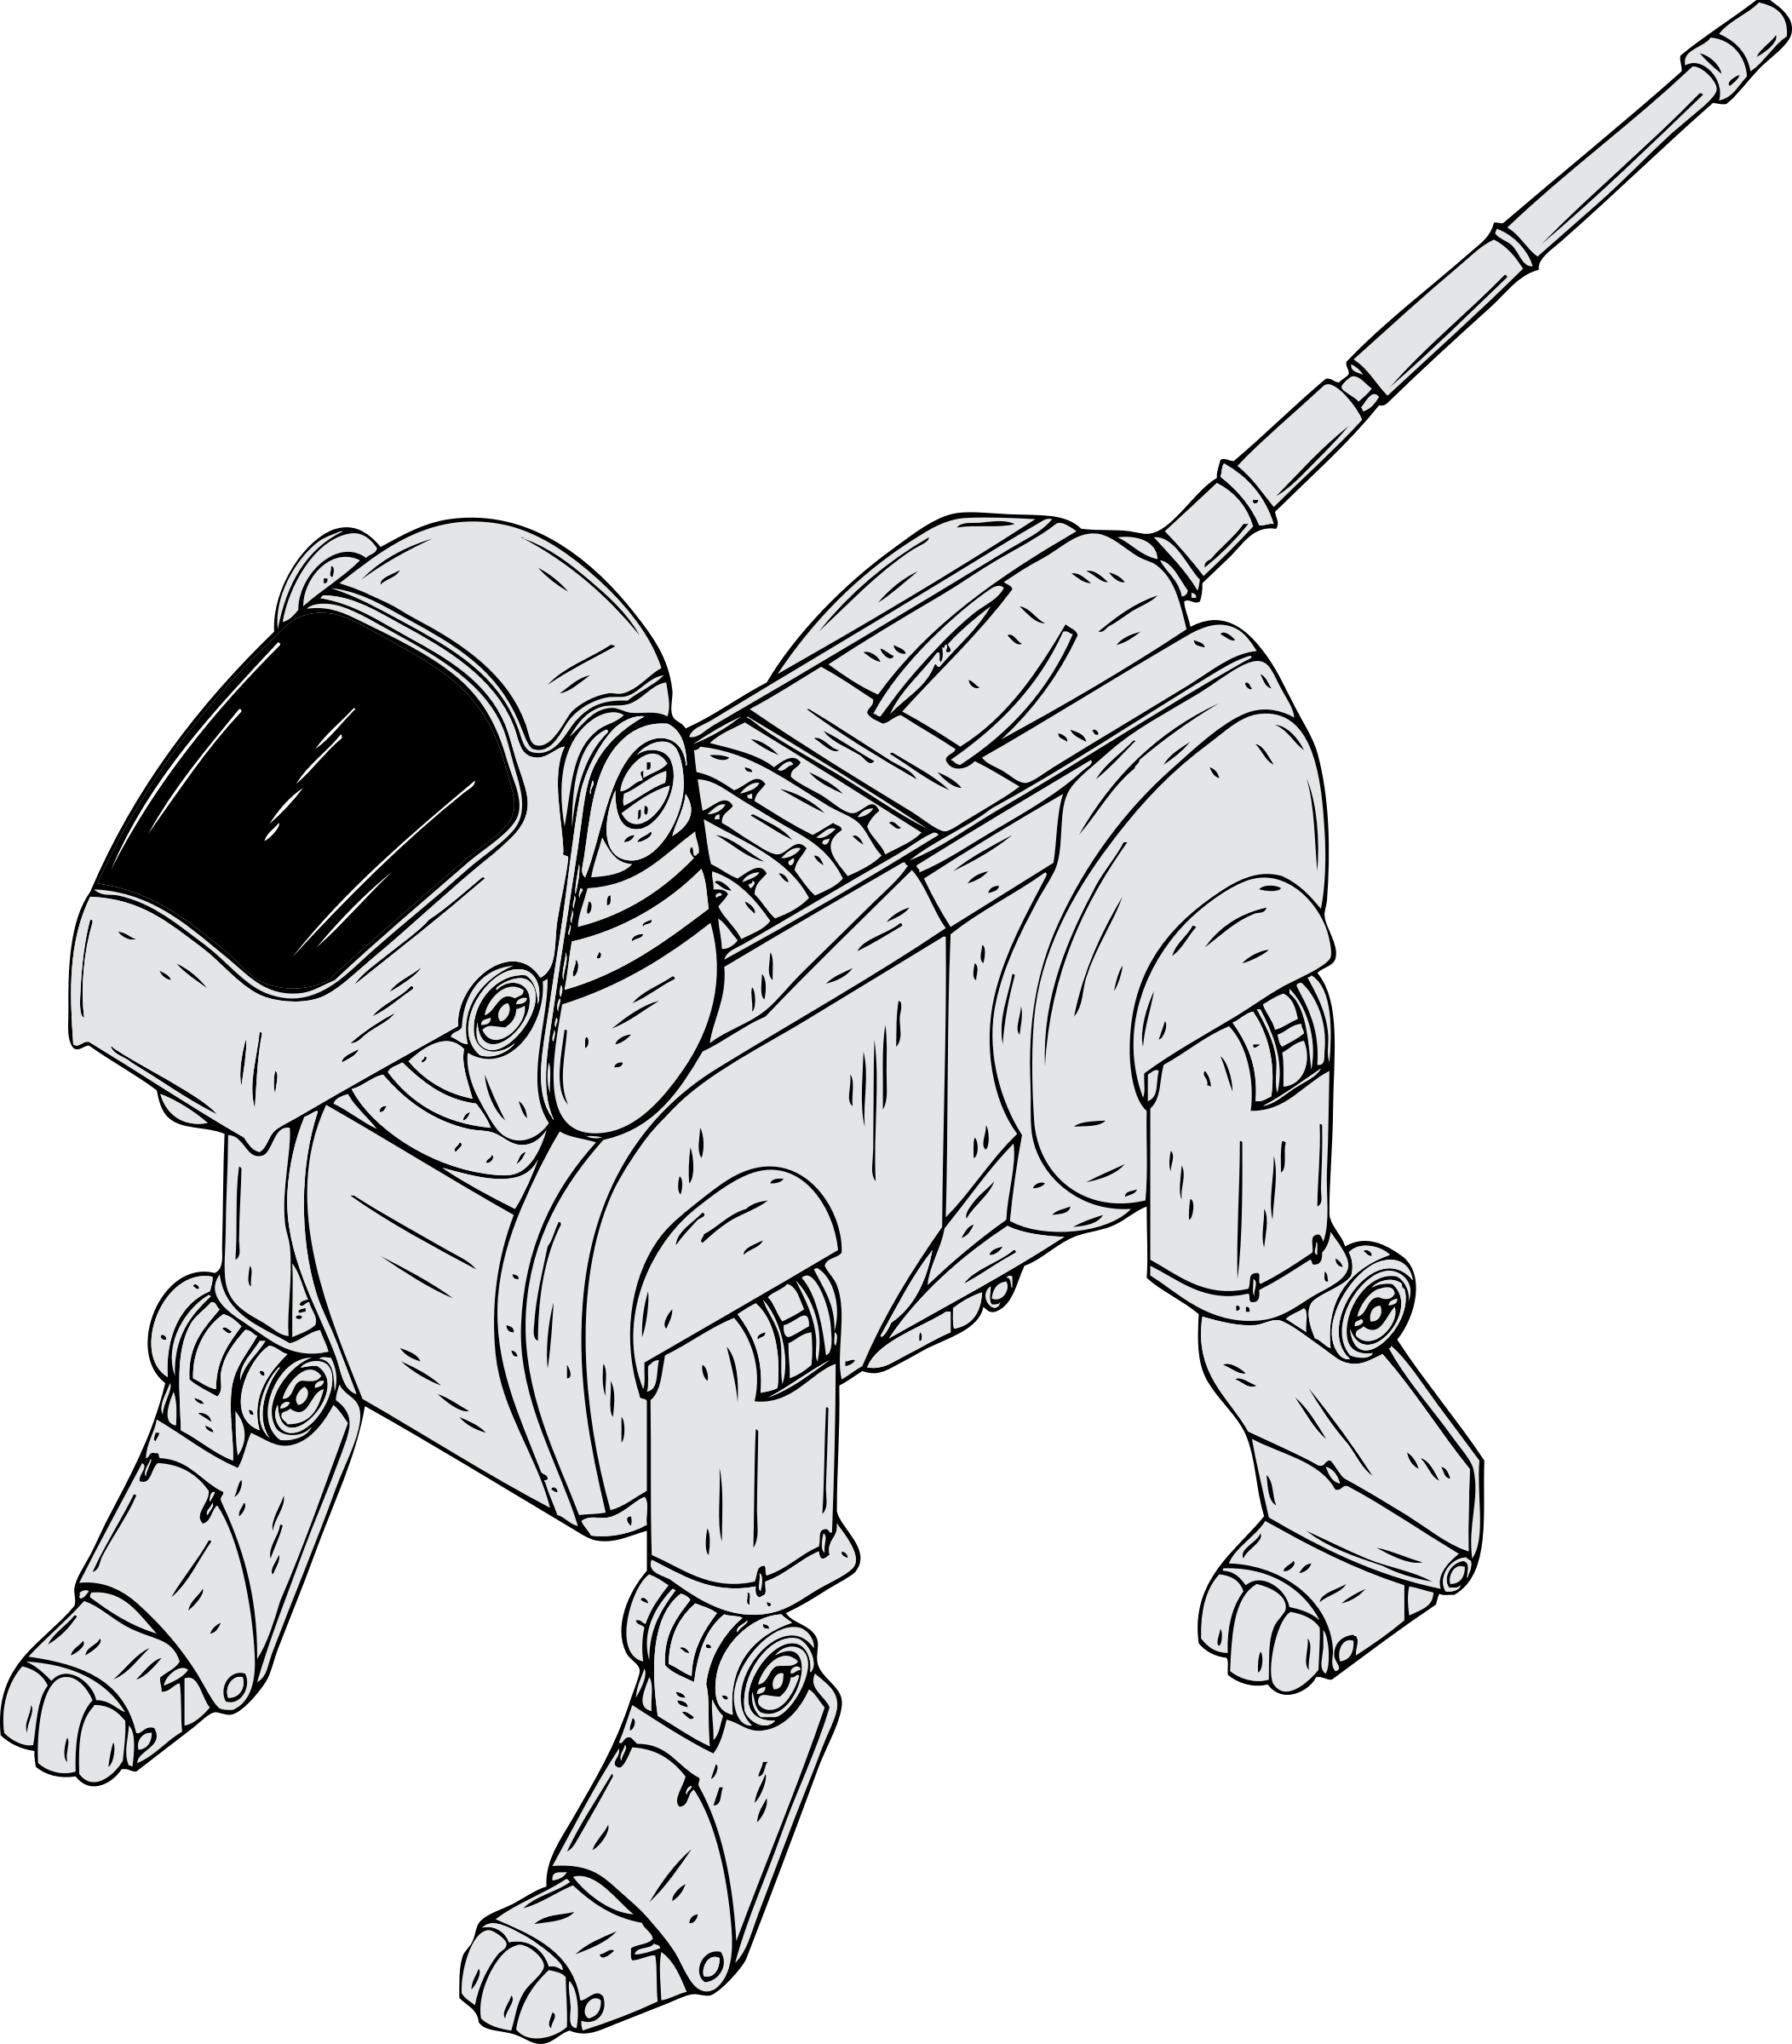 Clipart coloring book dog toys picture free Clipart - robot dog picture free